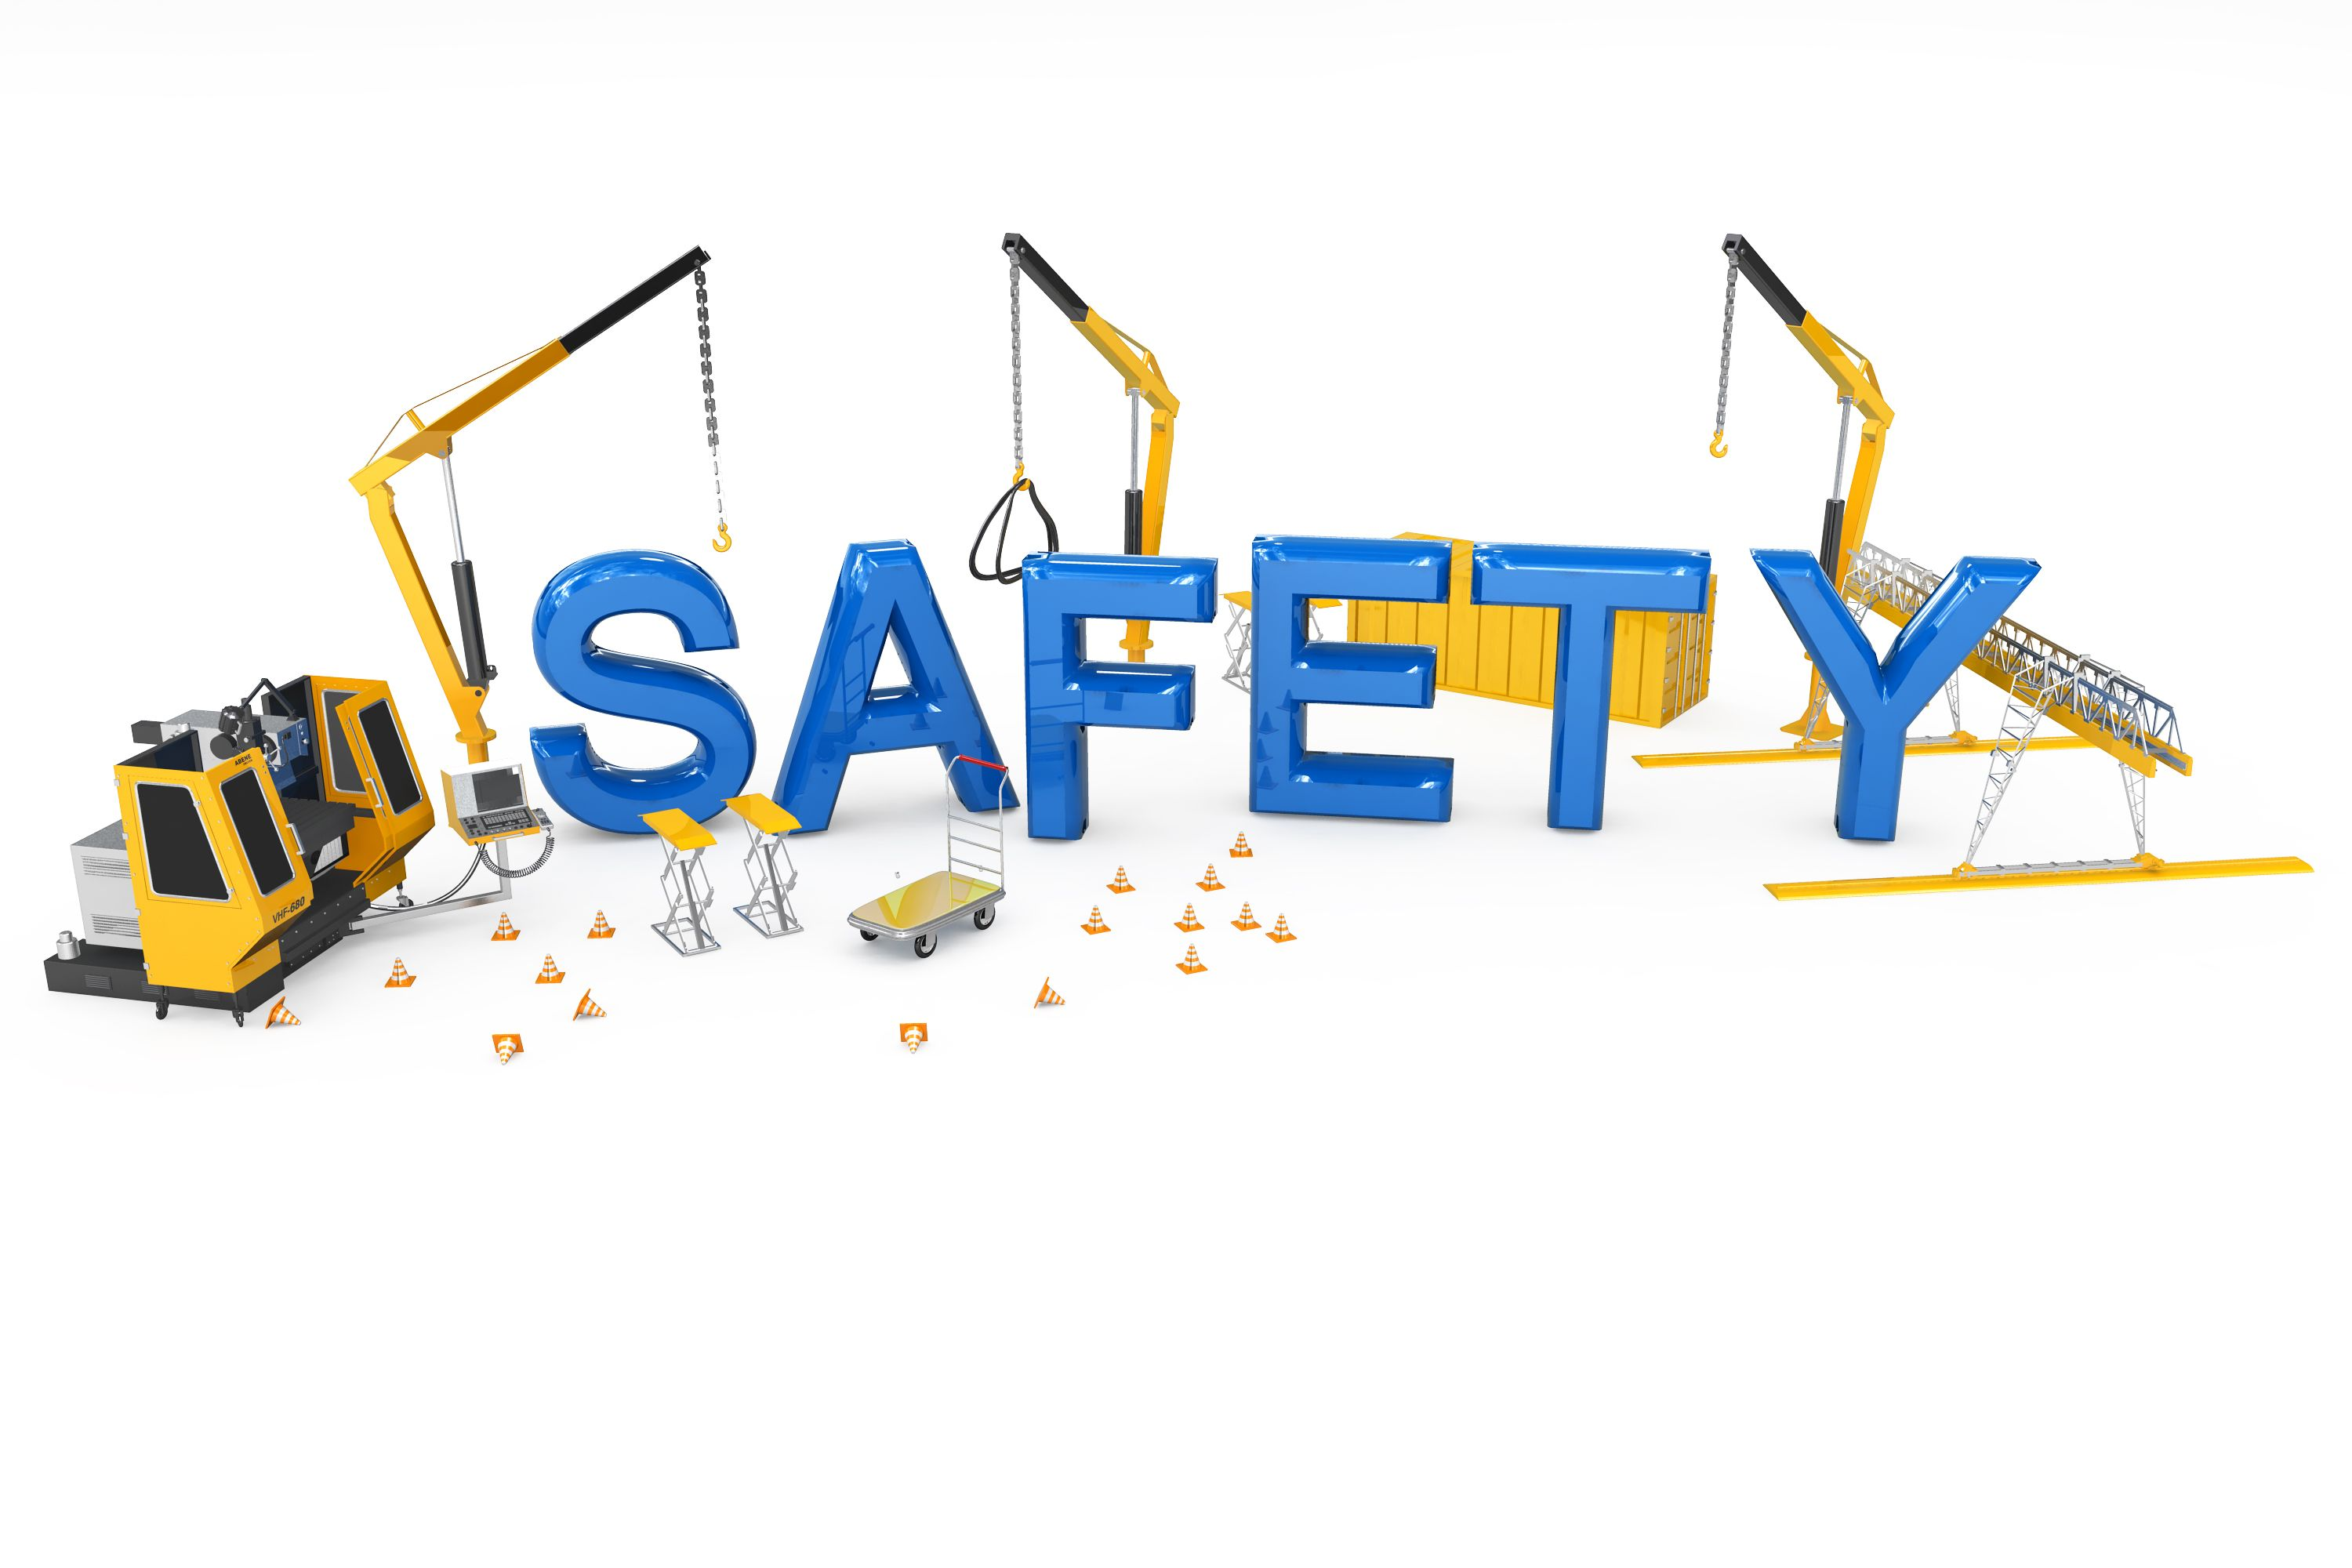 Safety construction powerpoint templates and powerpoint backgrounds safety word with three cranes in toneelgroepblik Images